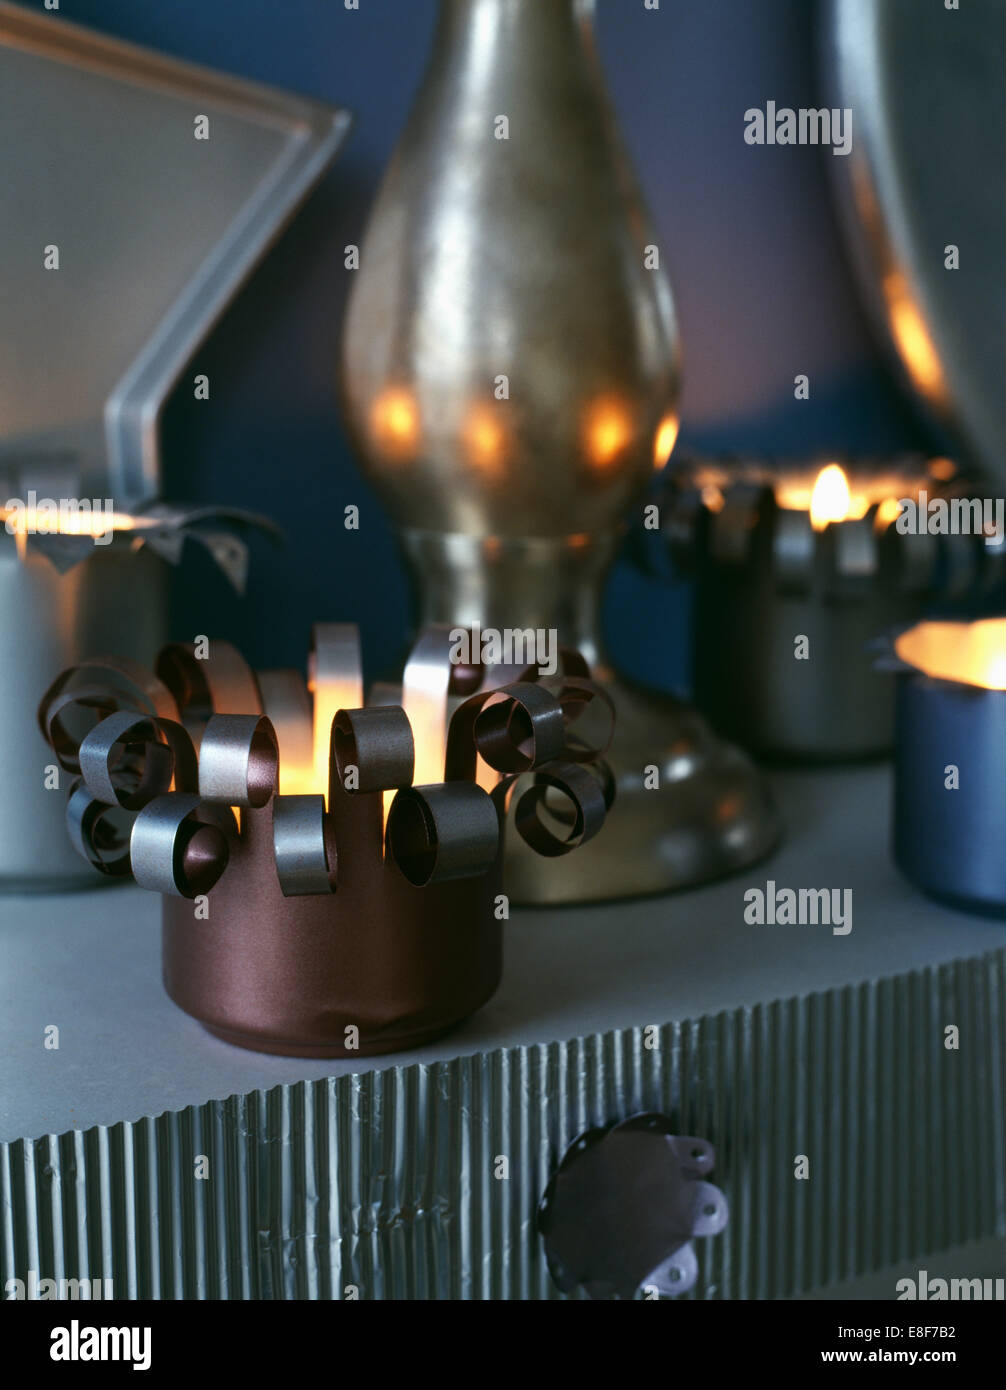 Close-up of lighted tea lights in candle holders made from old tins - Stock Image